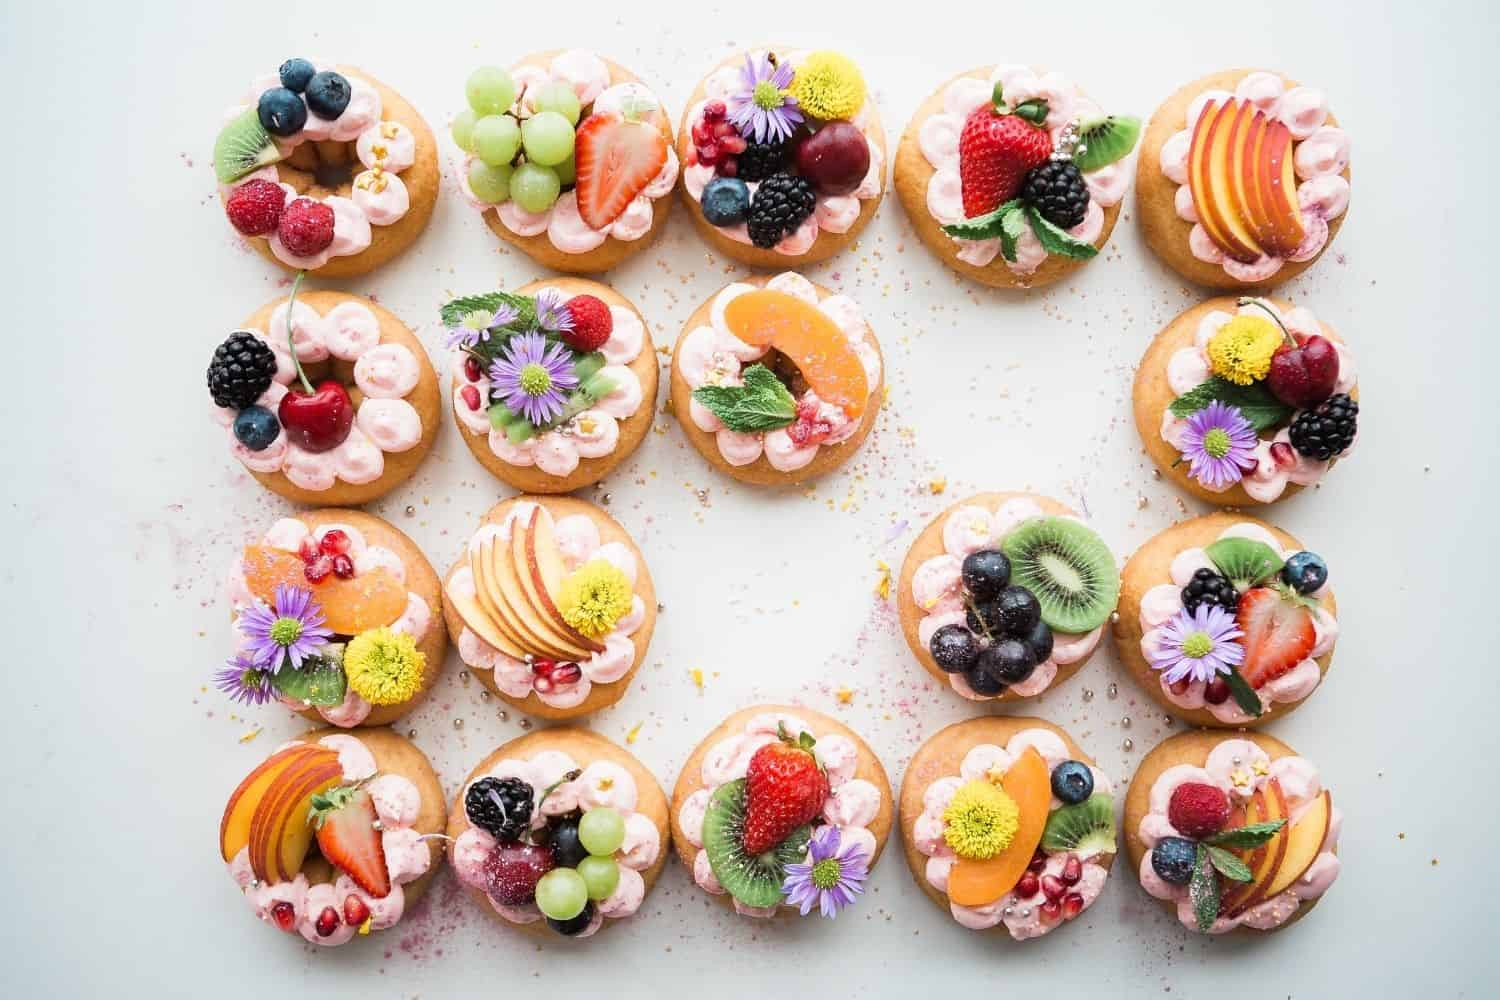 Five Delicious Fruity Desserts Just In Time For Springtime